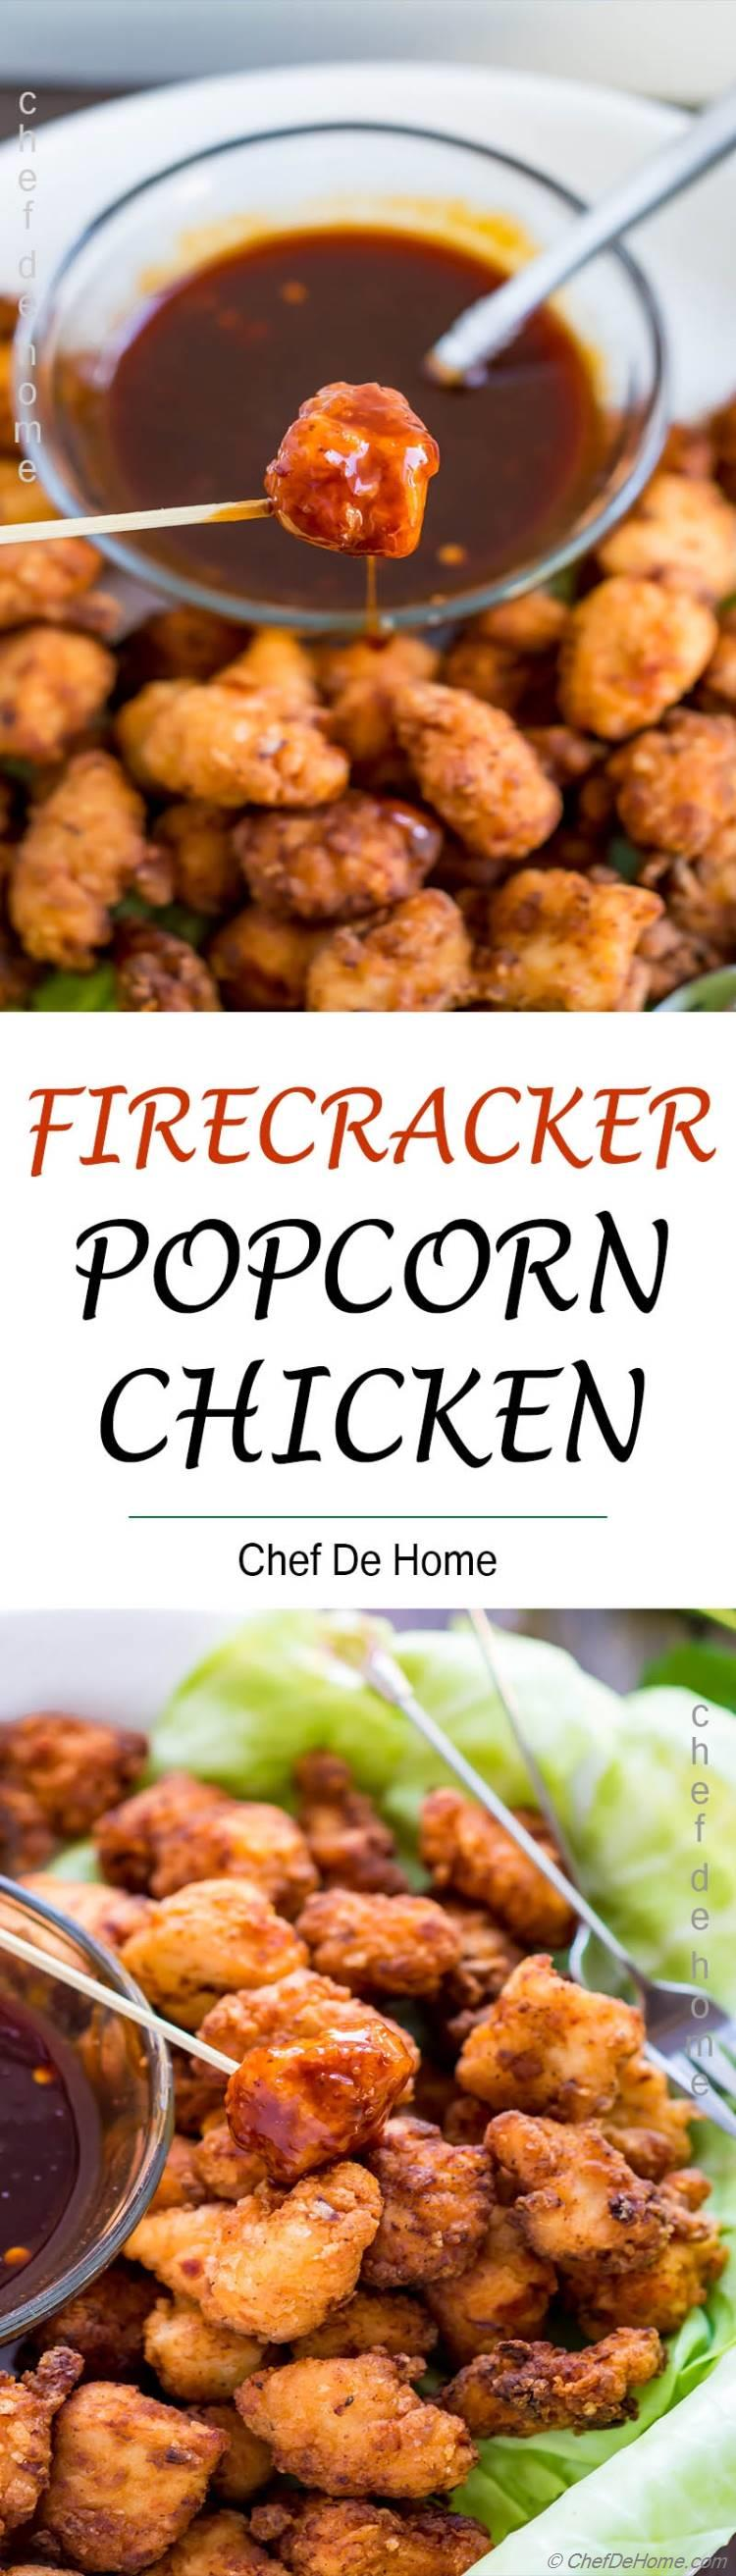 Popcorn Chicken with Firecracker Sauce